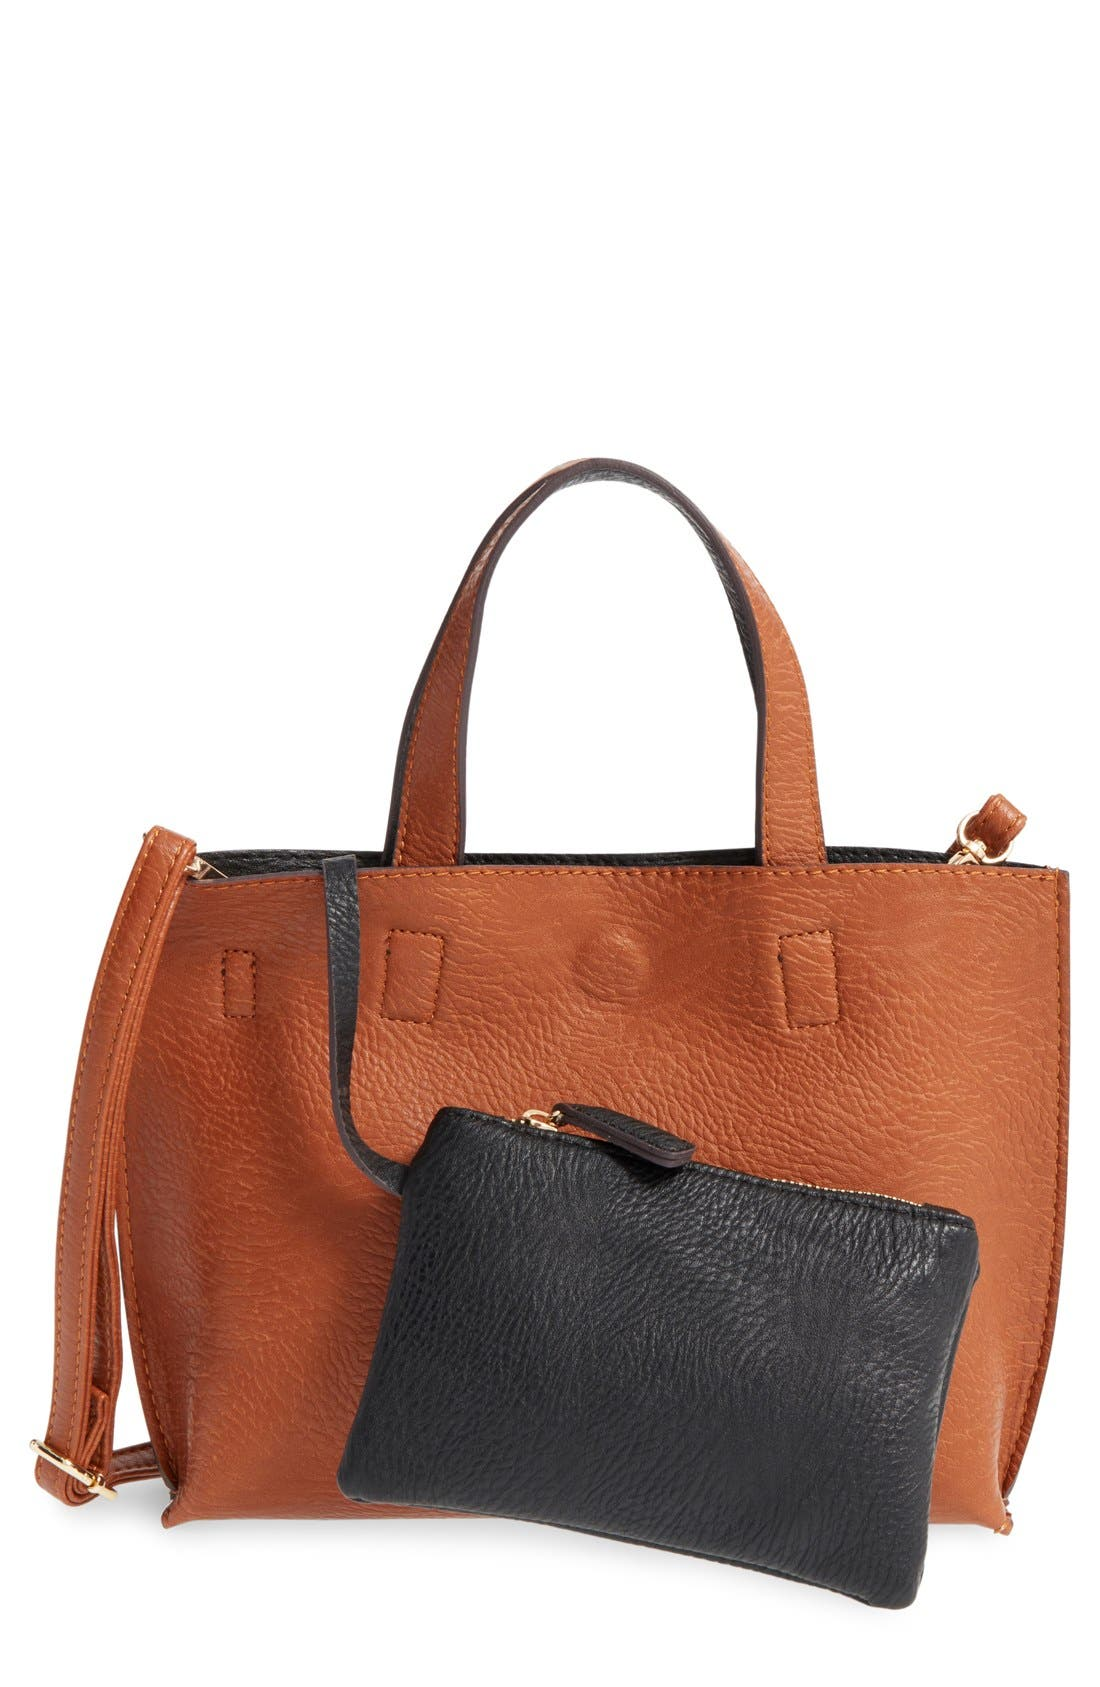 Main Image - Street Level Reversible Faux Leather Crossbody Mini Tote & Wristlet